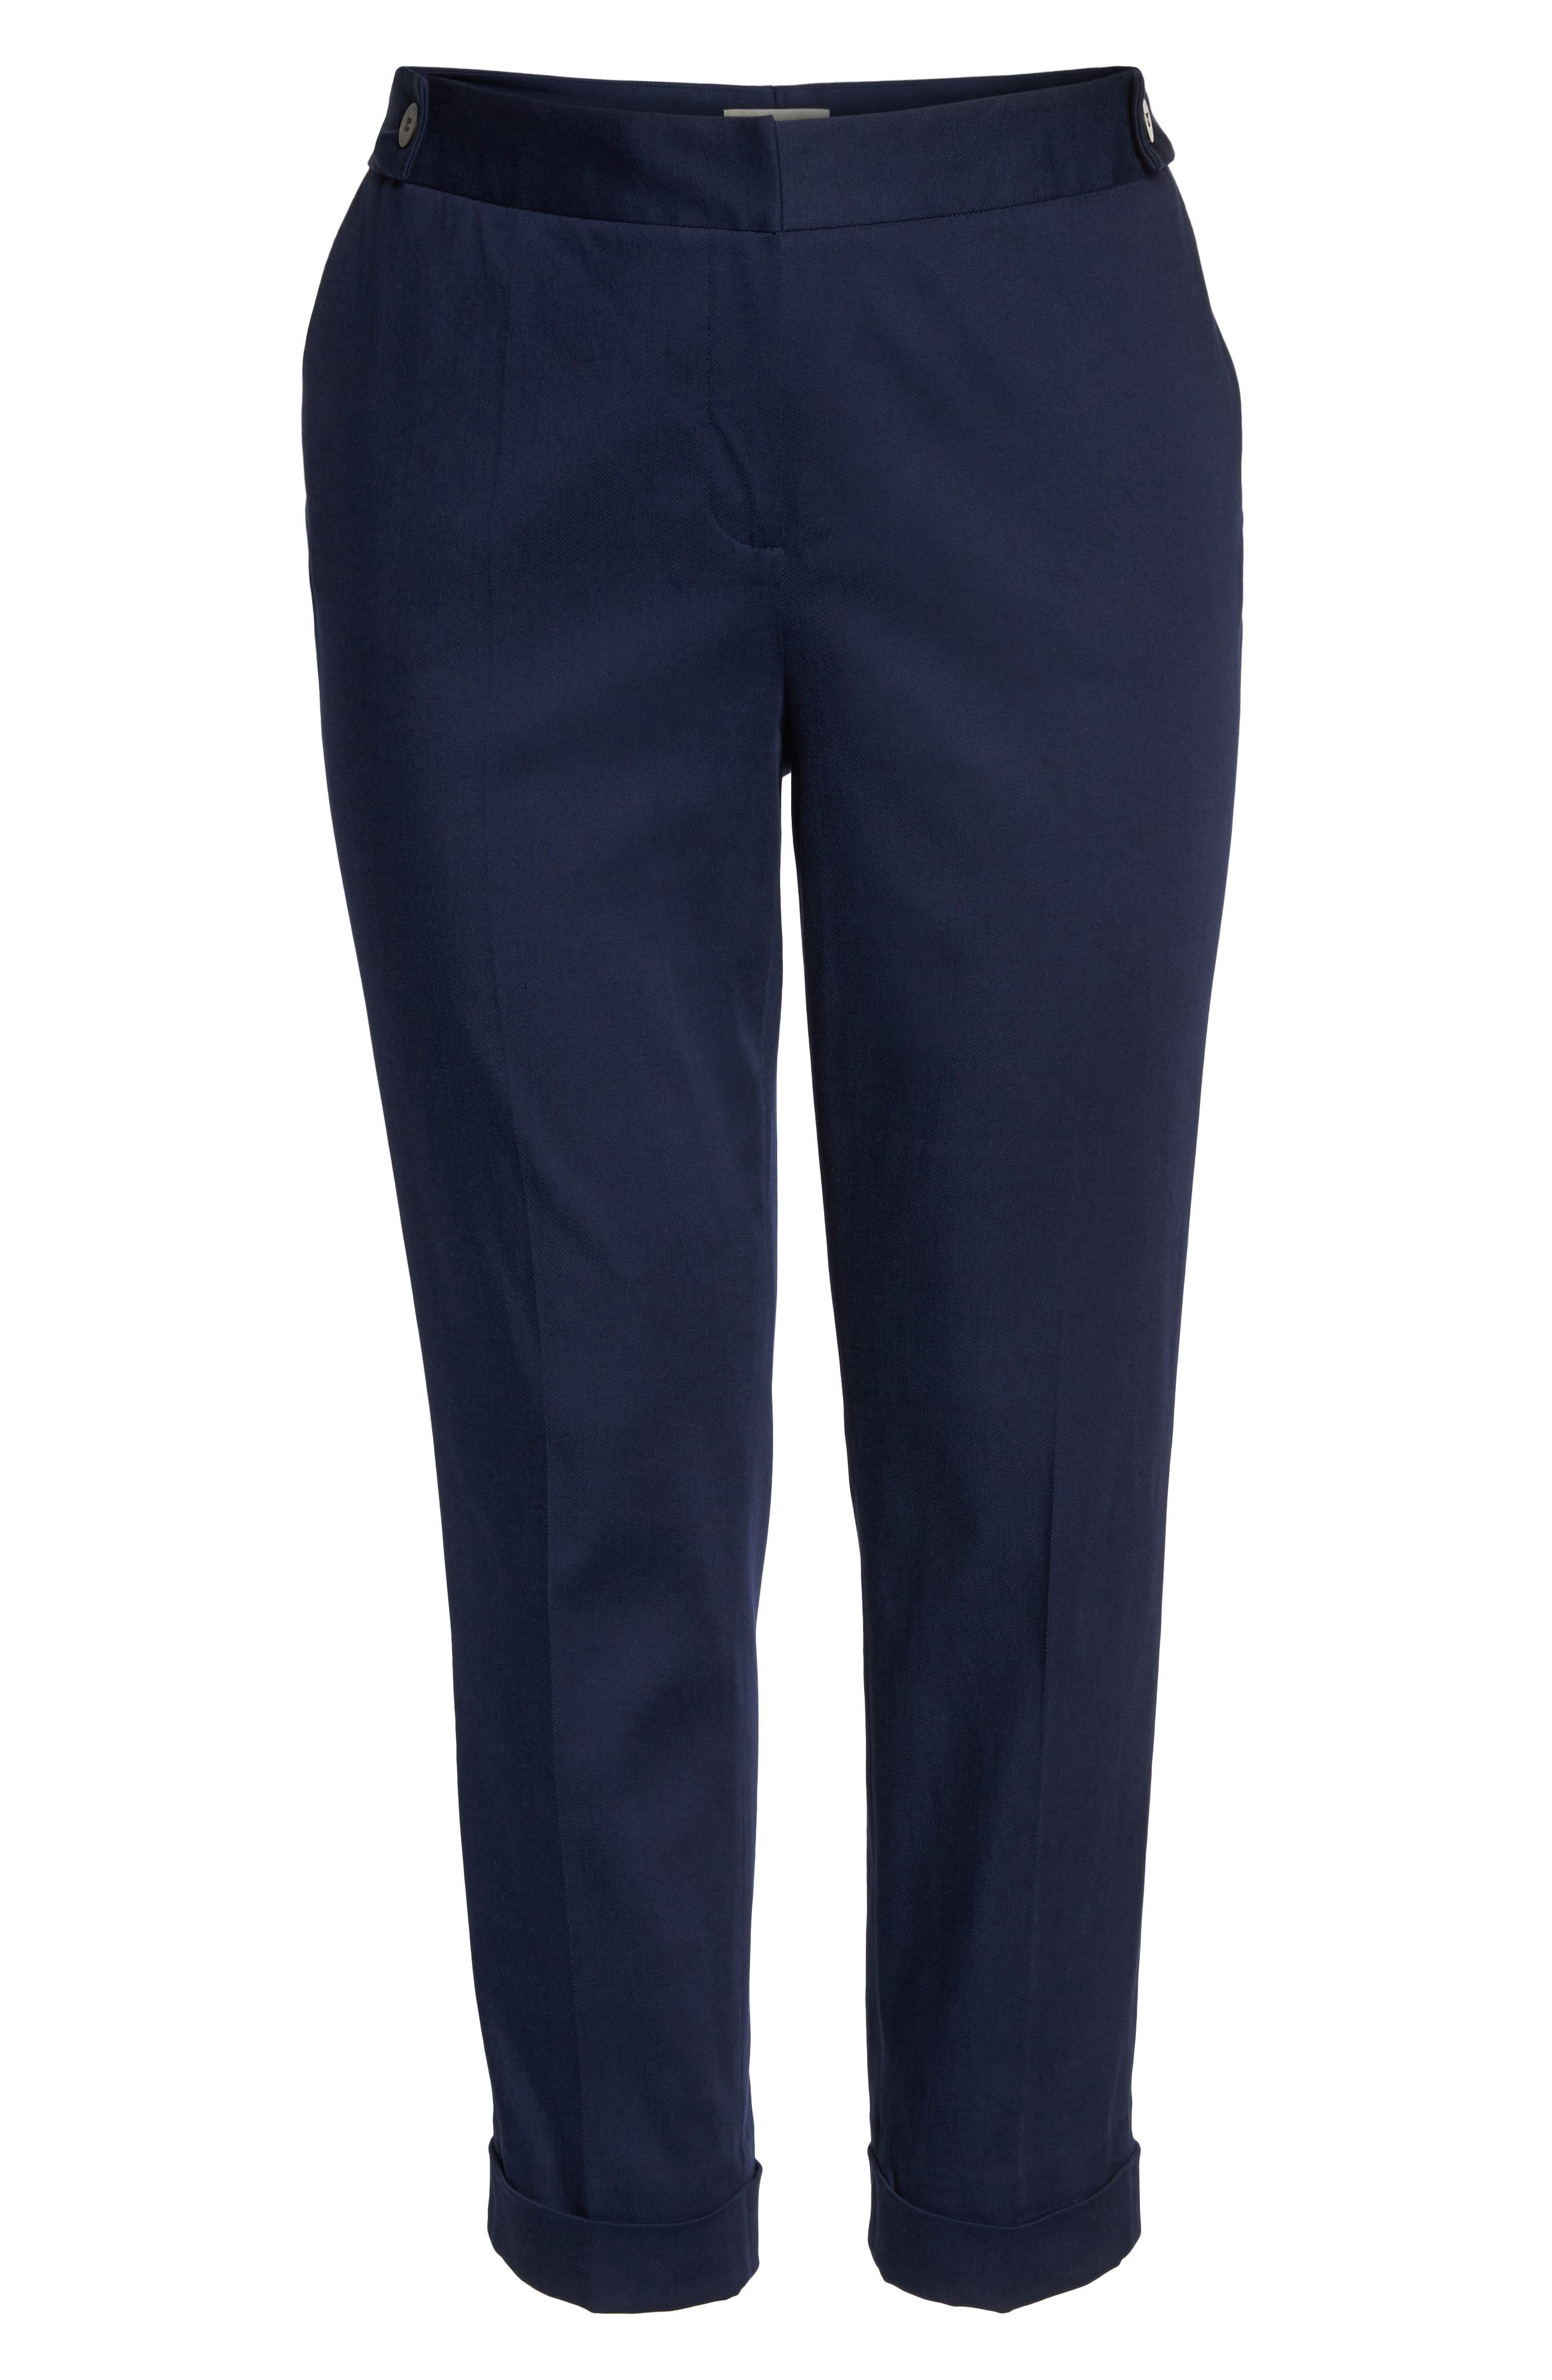 Stretch Twill Ankle Pants,                             Alternate thumbnail 7, color,                             Navy Peacoat